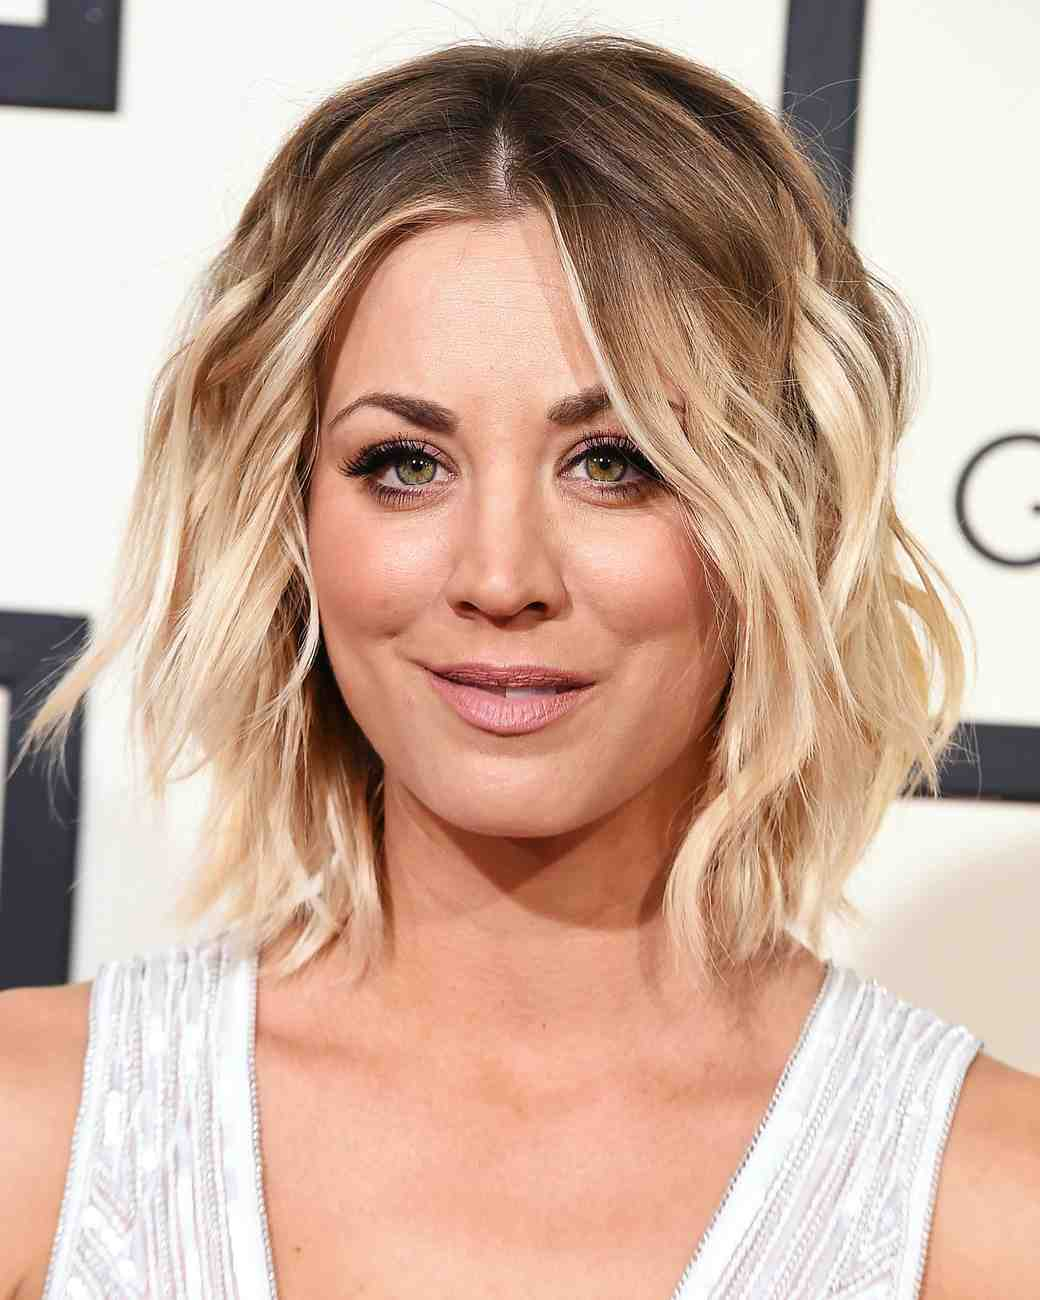 The Best Wedding Hairstyles For Round Faces Martha